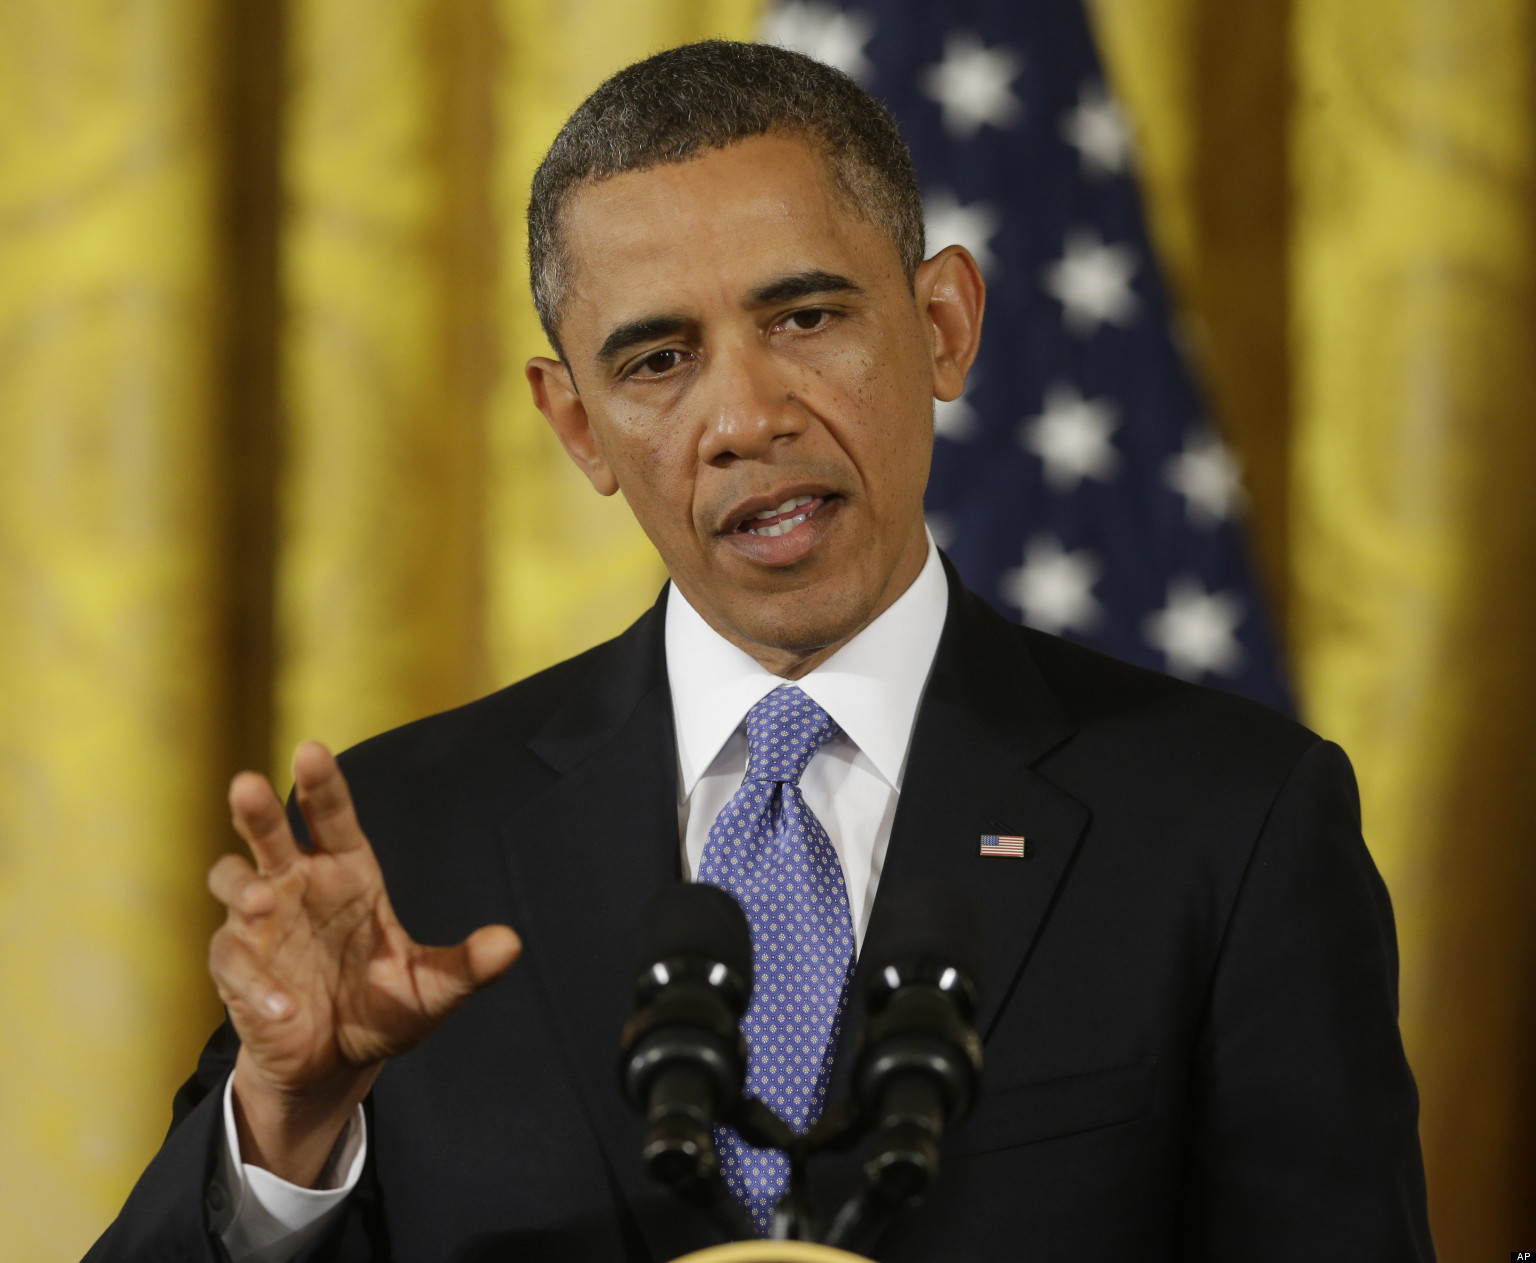 Obama: Talking Points With Benghazi a 'Sideshow'